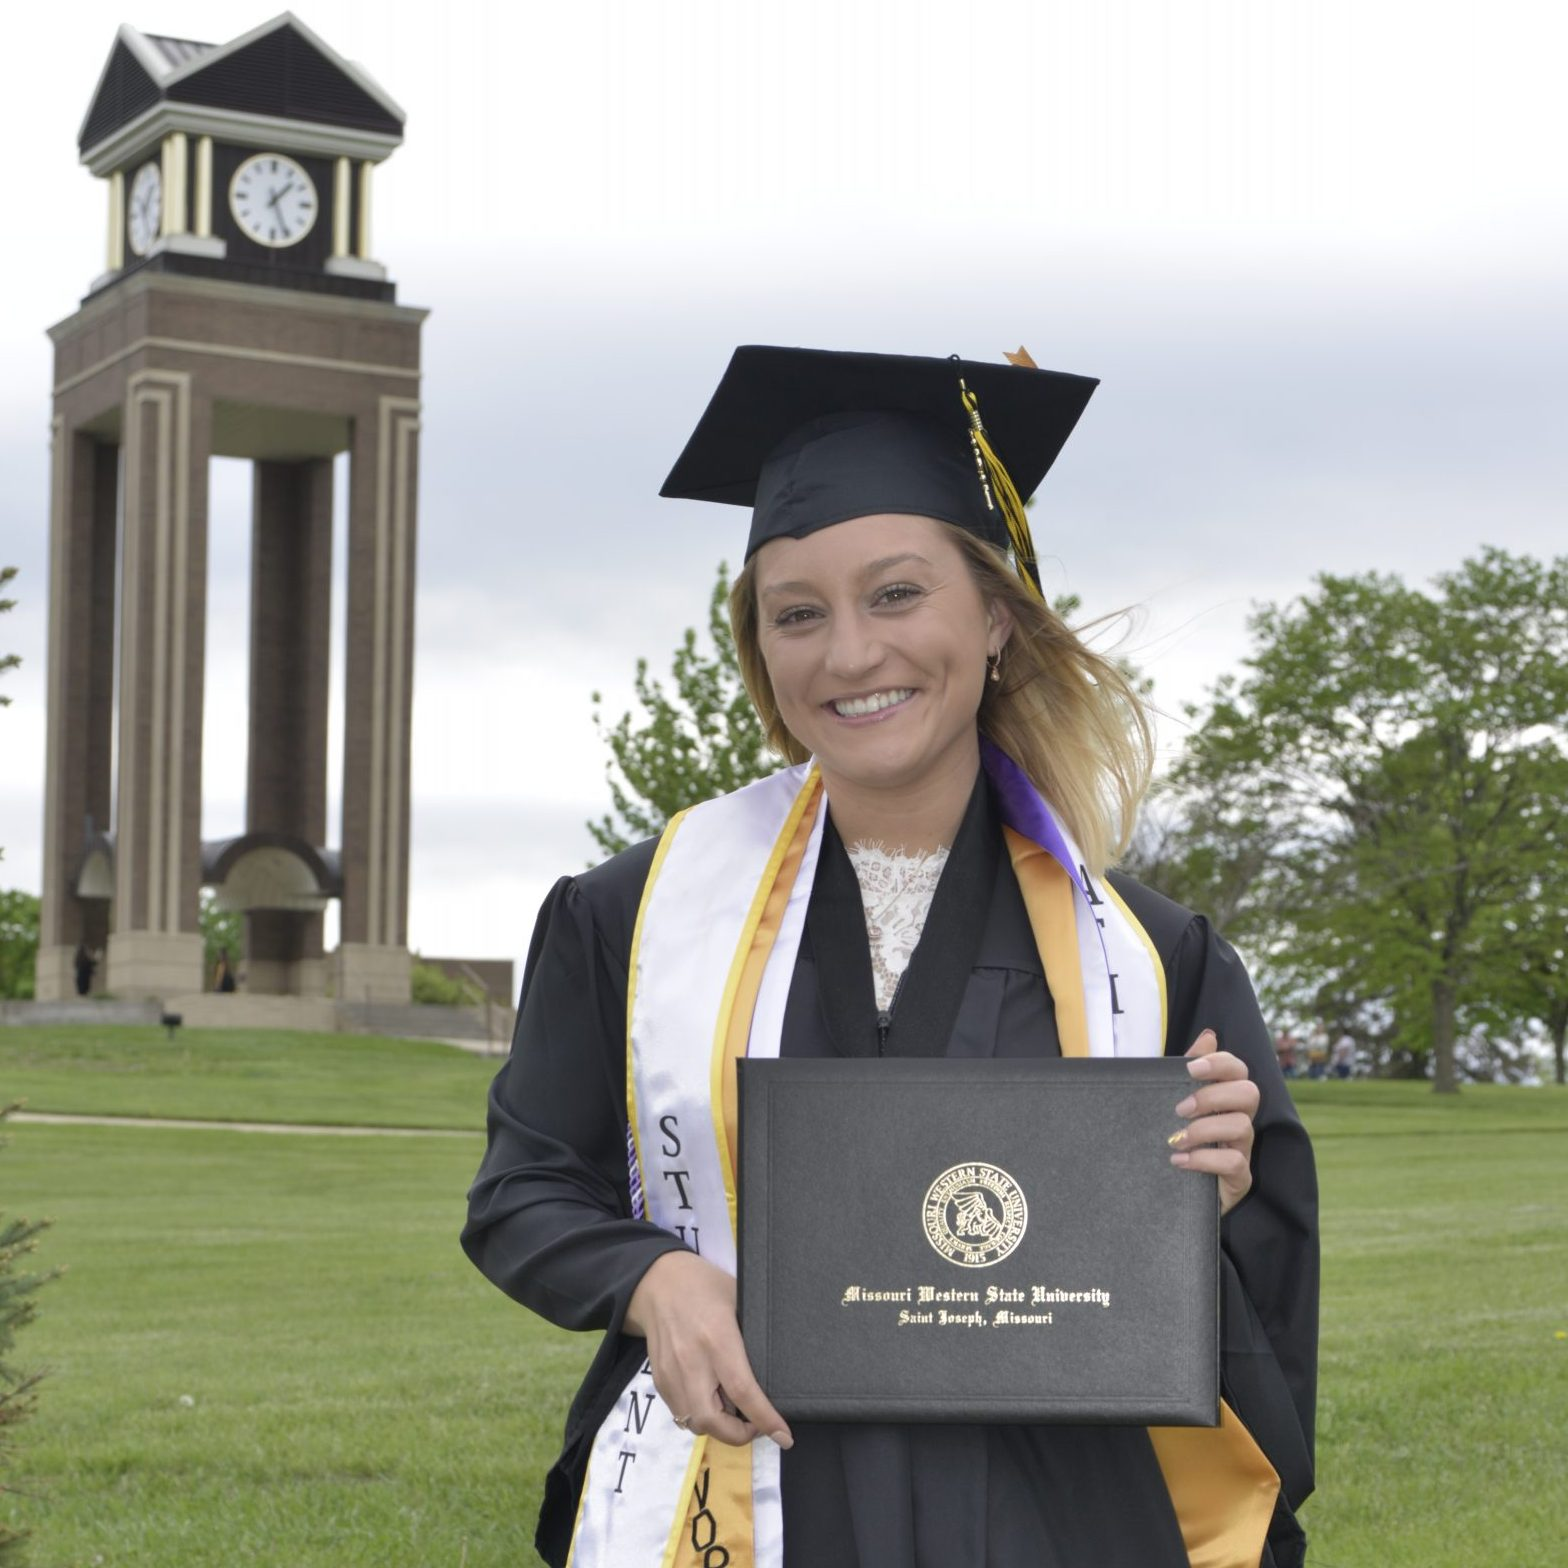 mackenzie oneill posing in front of the clocktower with her diploma